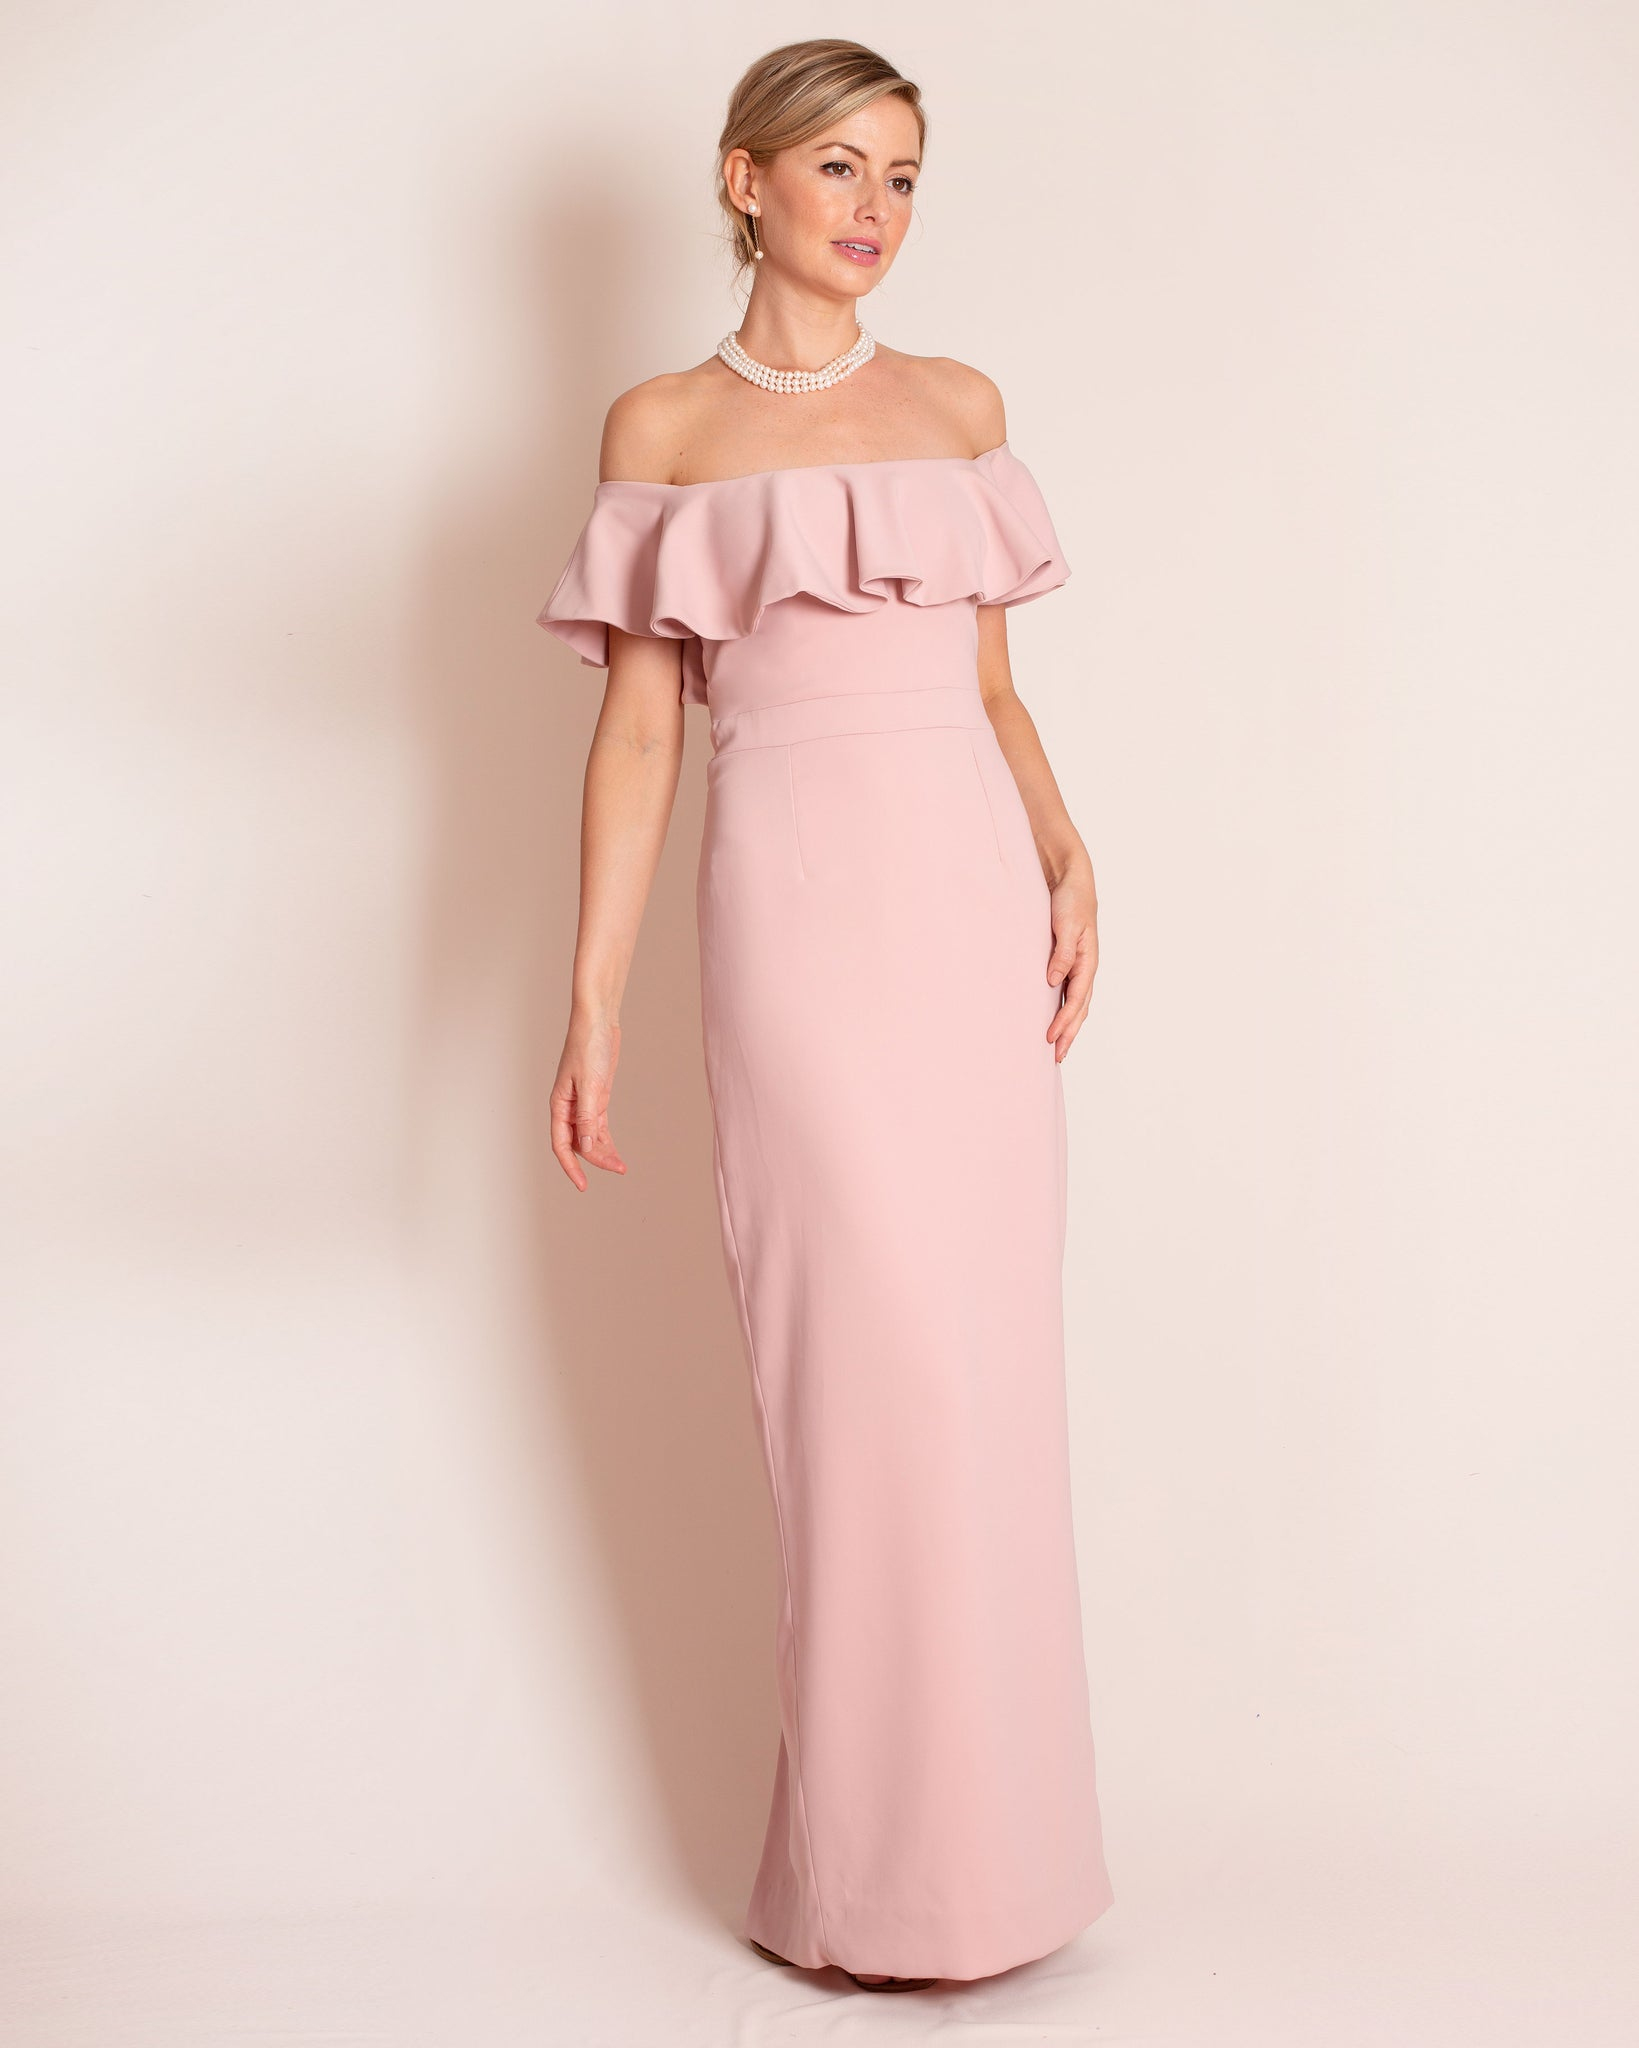 The Abigail Gown